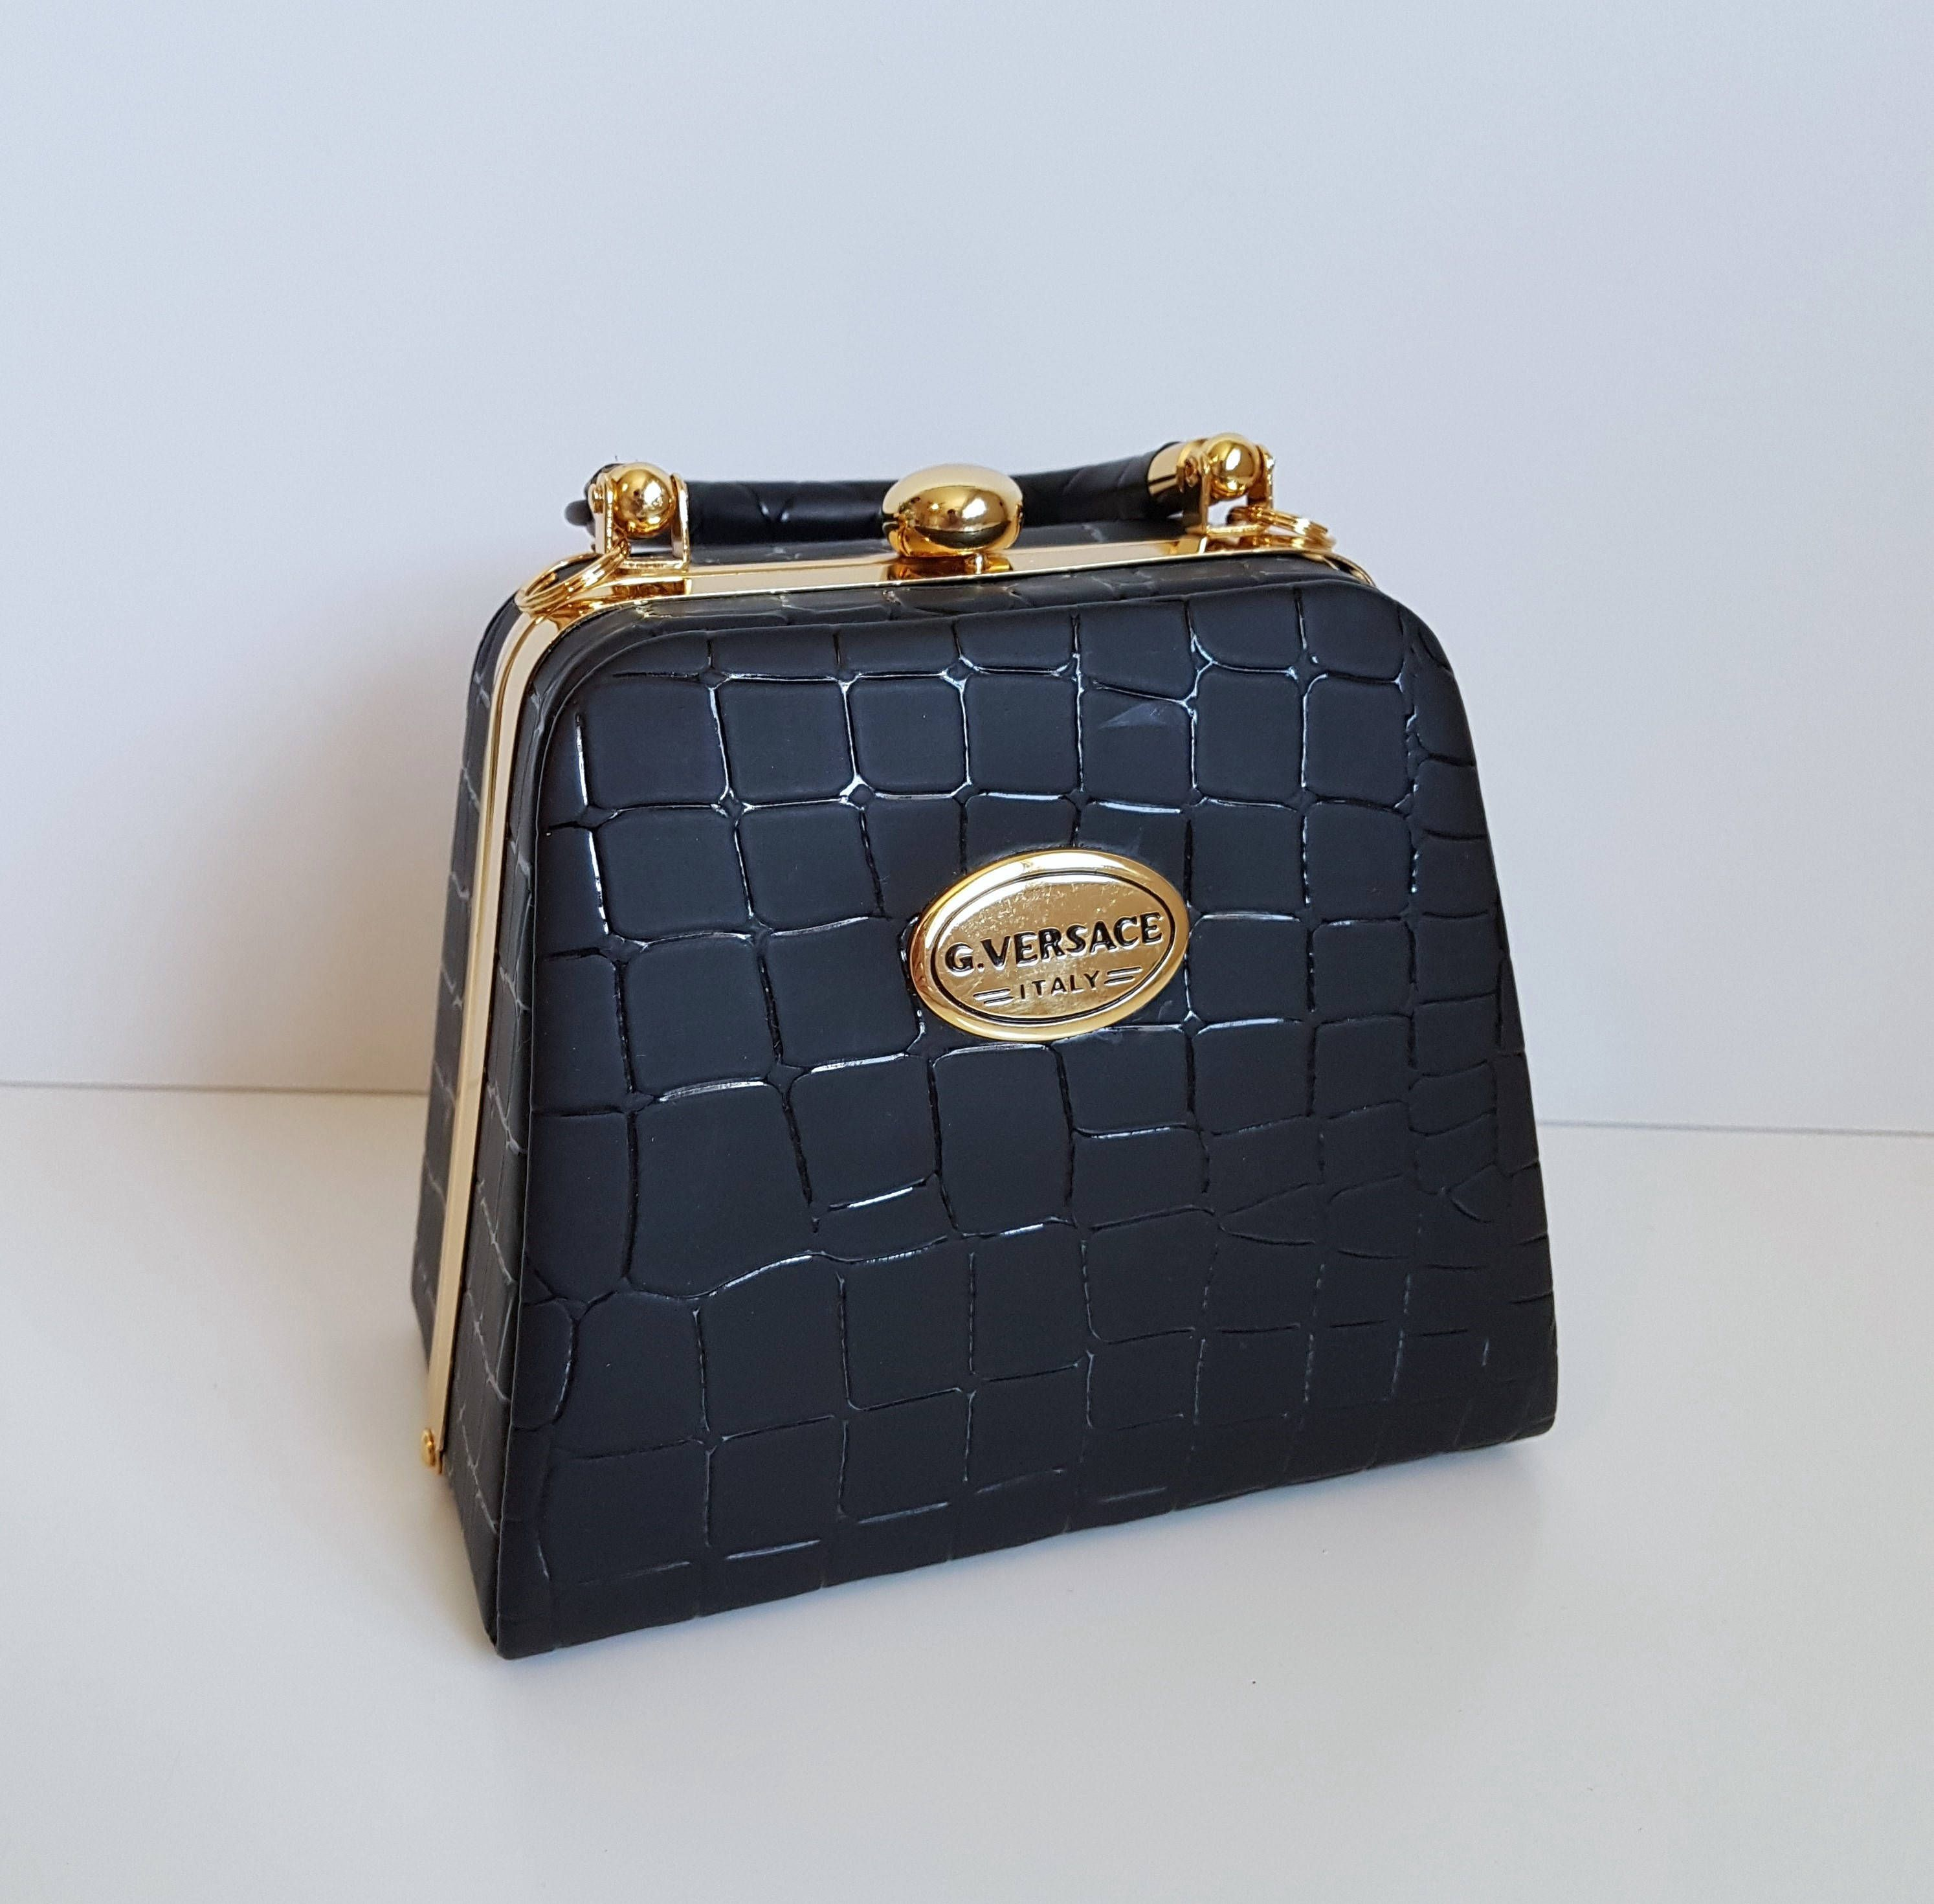 77eb24ad21 Vintage G. VERSACE Black Handbag, Clutch, Crocodile Embossed Pattern with  Gold Trim and Handle, Italy by RetroEnvy21 on Etsy